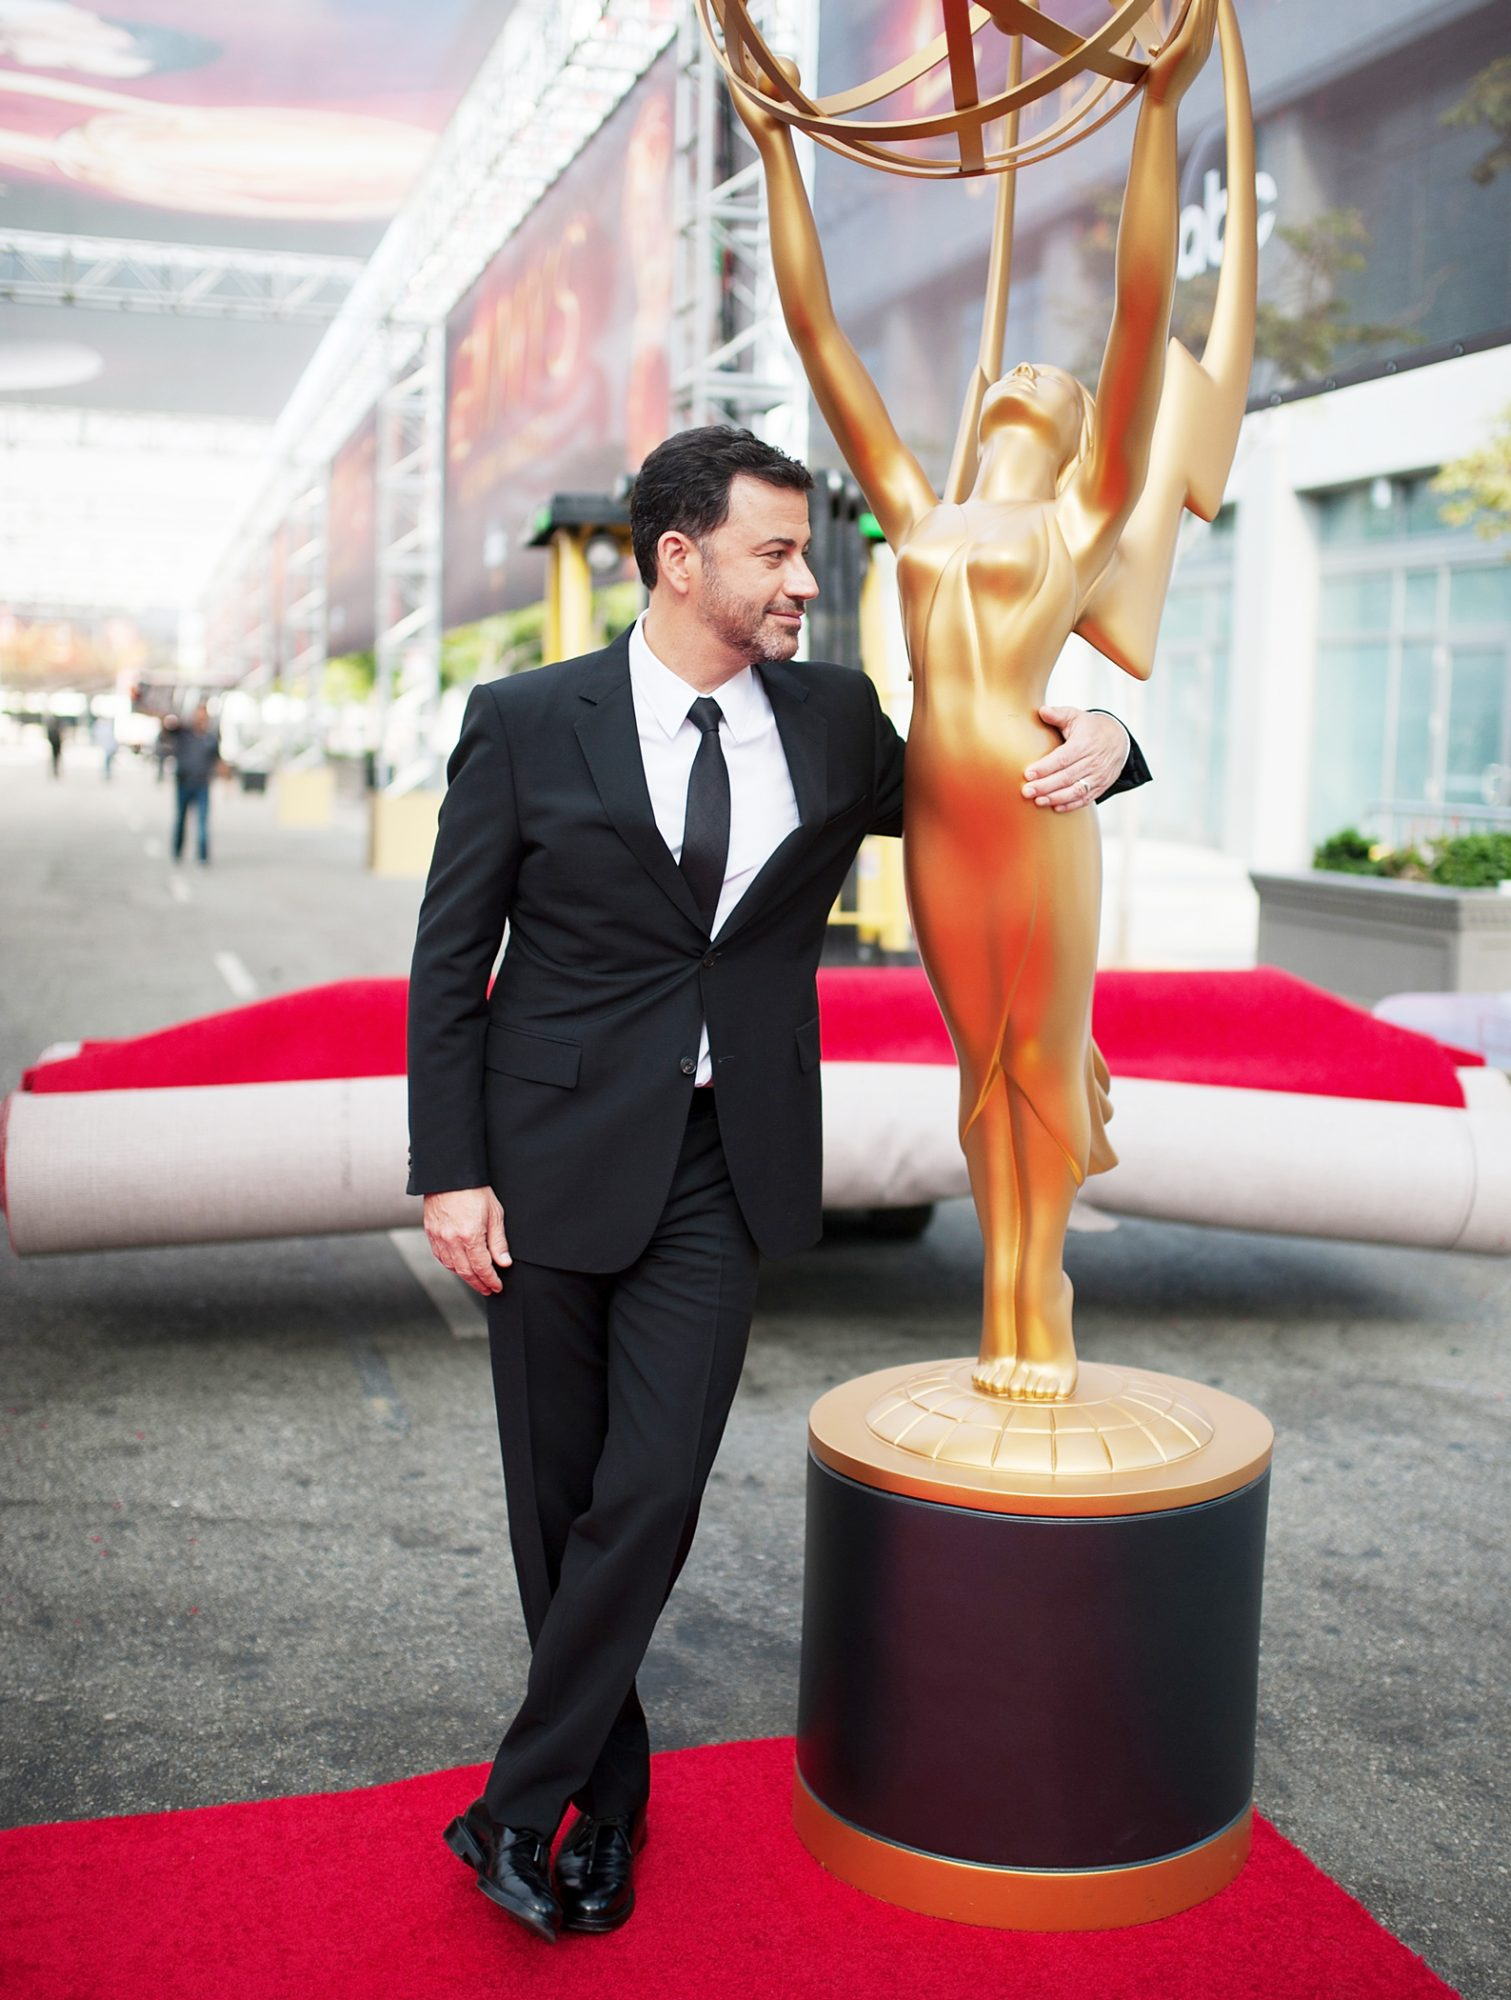 5 Reasons We're Excited for Jimmy Kimmel to Host the 2016 Emmy Awards